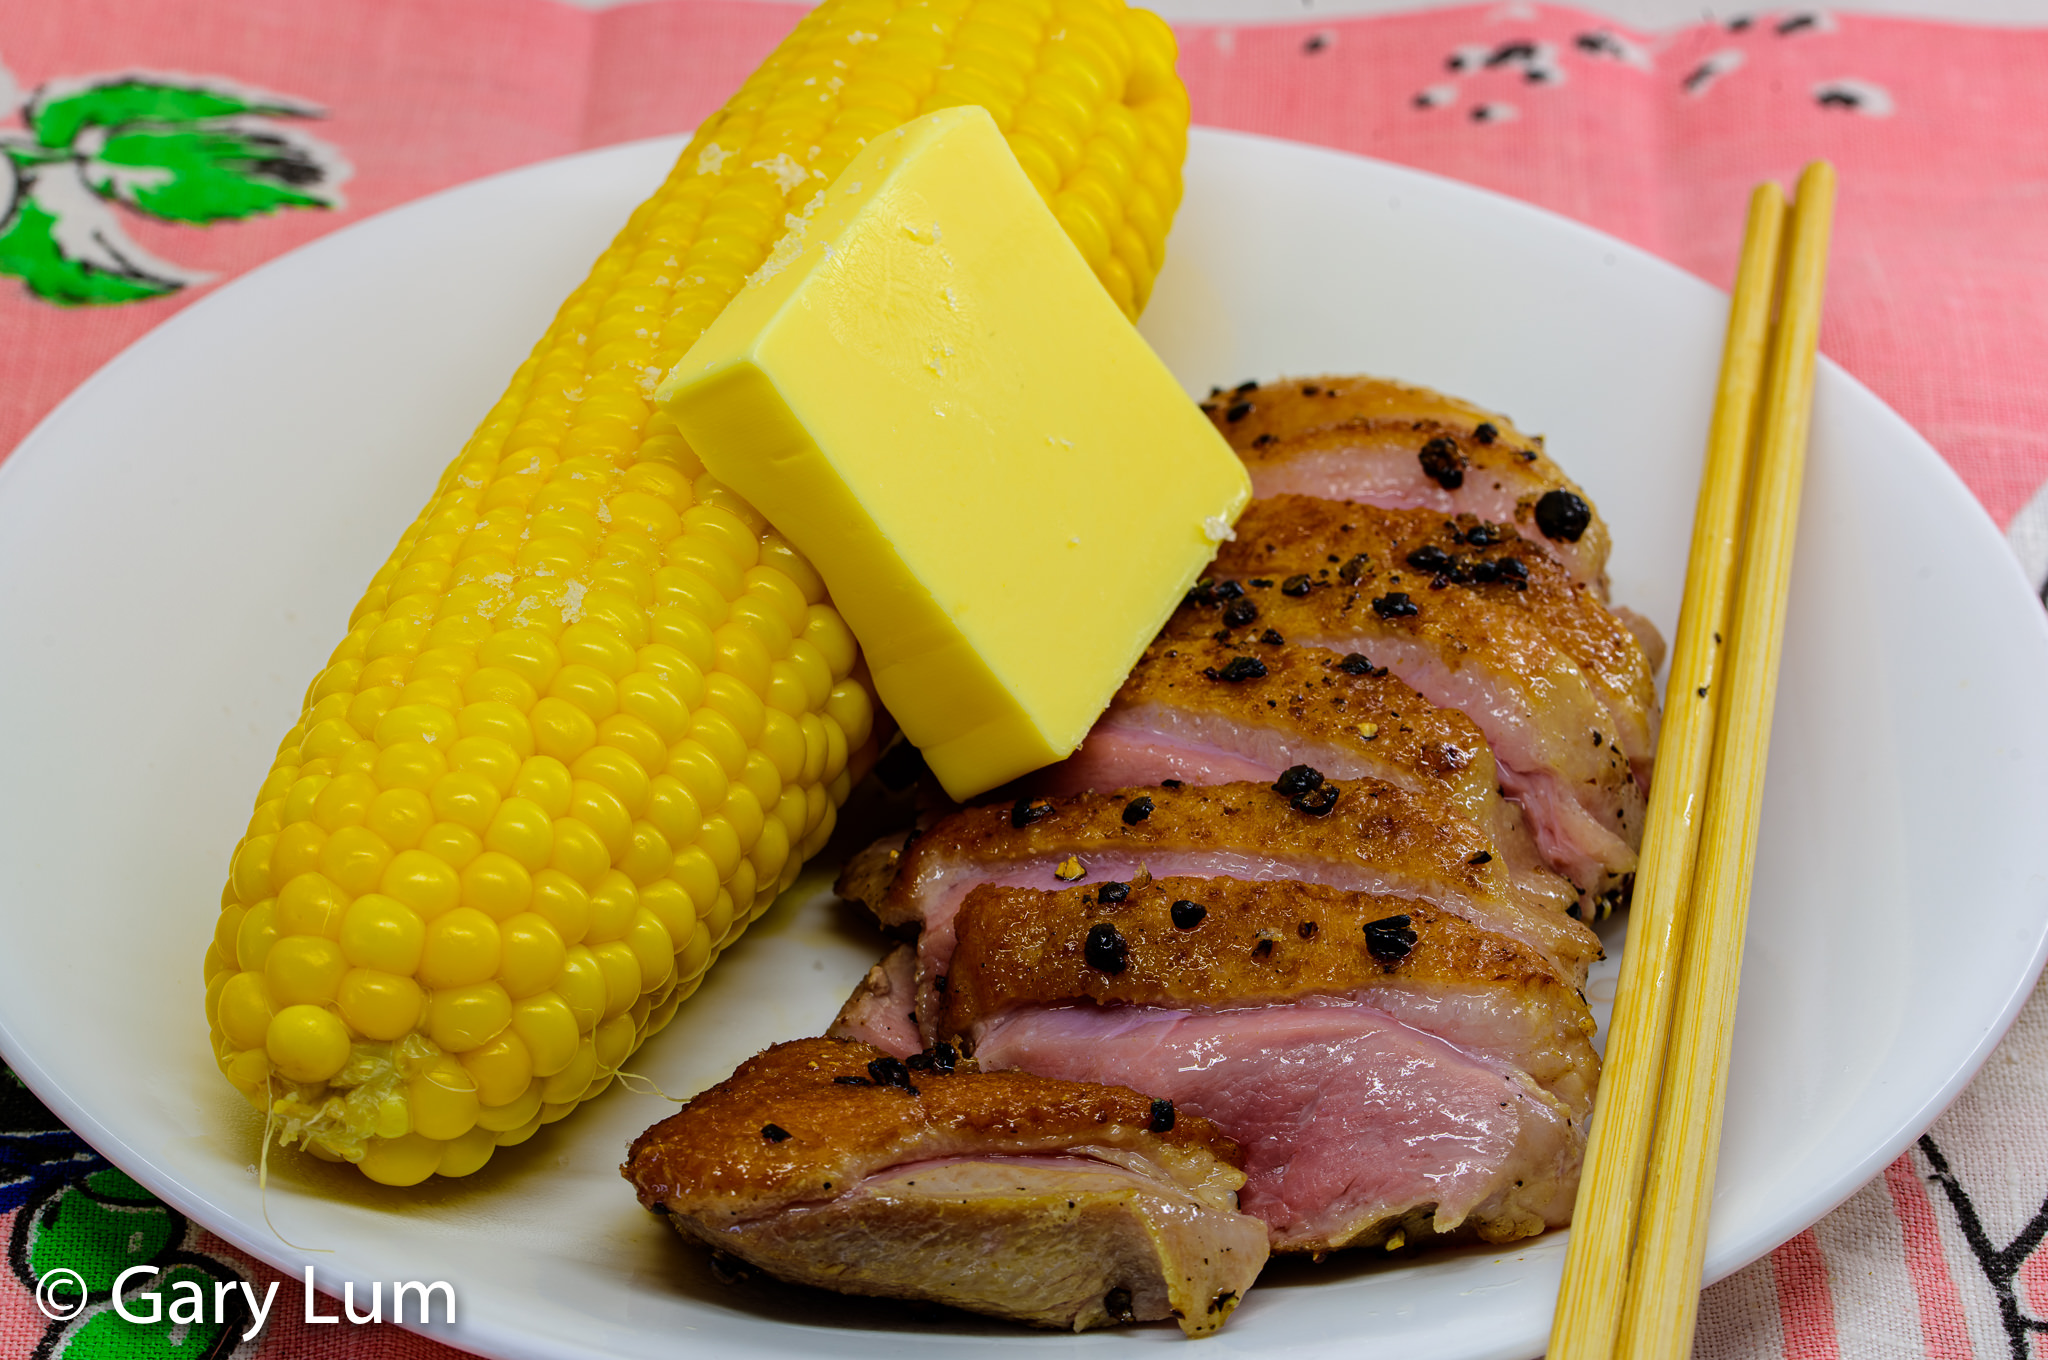 Butter served with sous vide duck breast and a corn cob. Gary Lum.